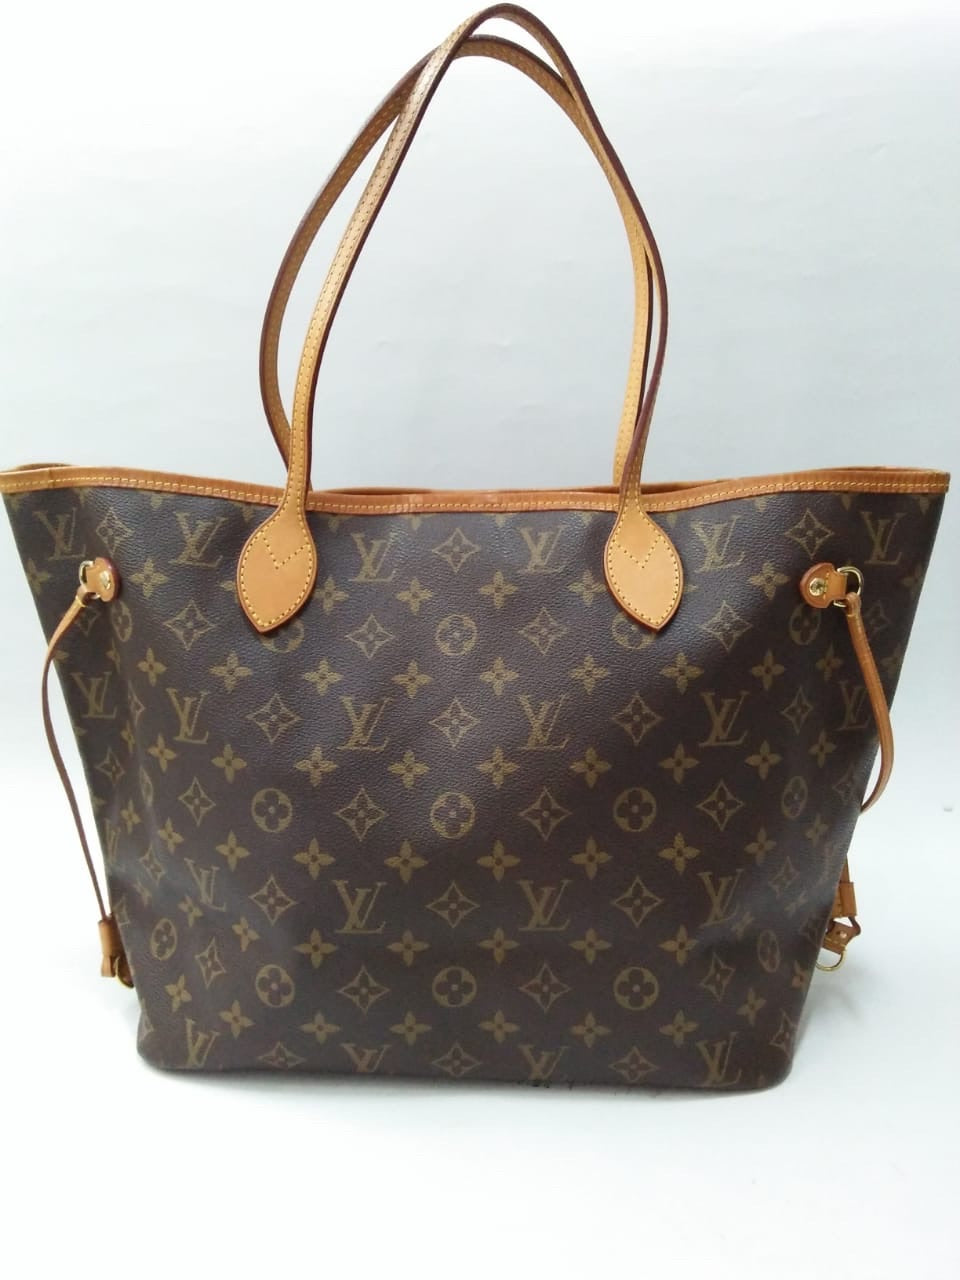 Preloved Louis Vuitton Neverfull MM Monogram